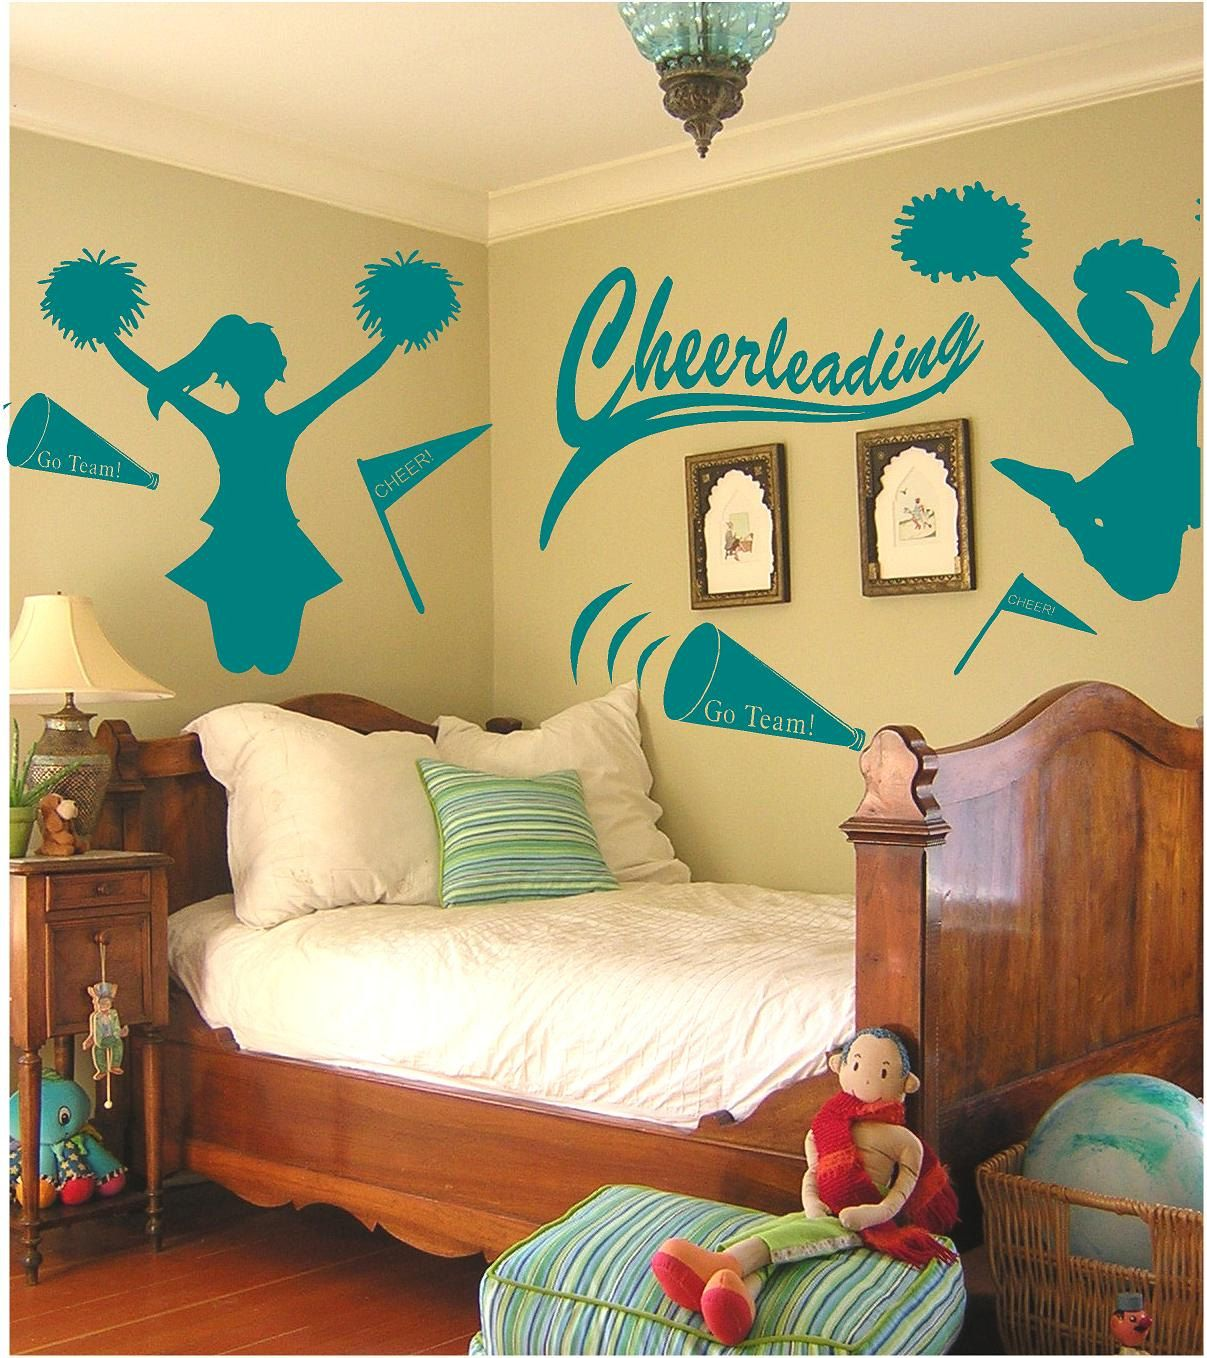 Cheerleading wall decals set cheerleading sports for Cheerleader wall mural